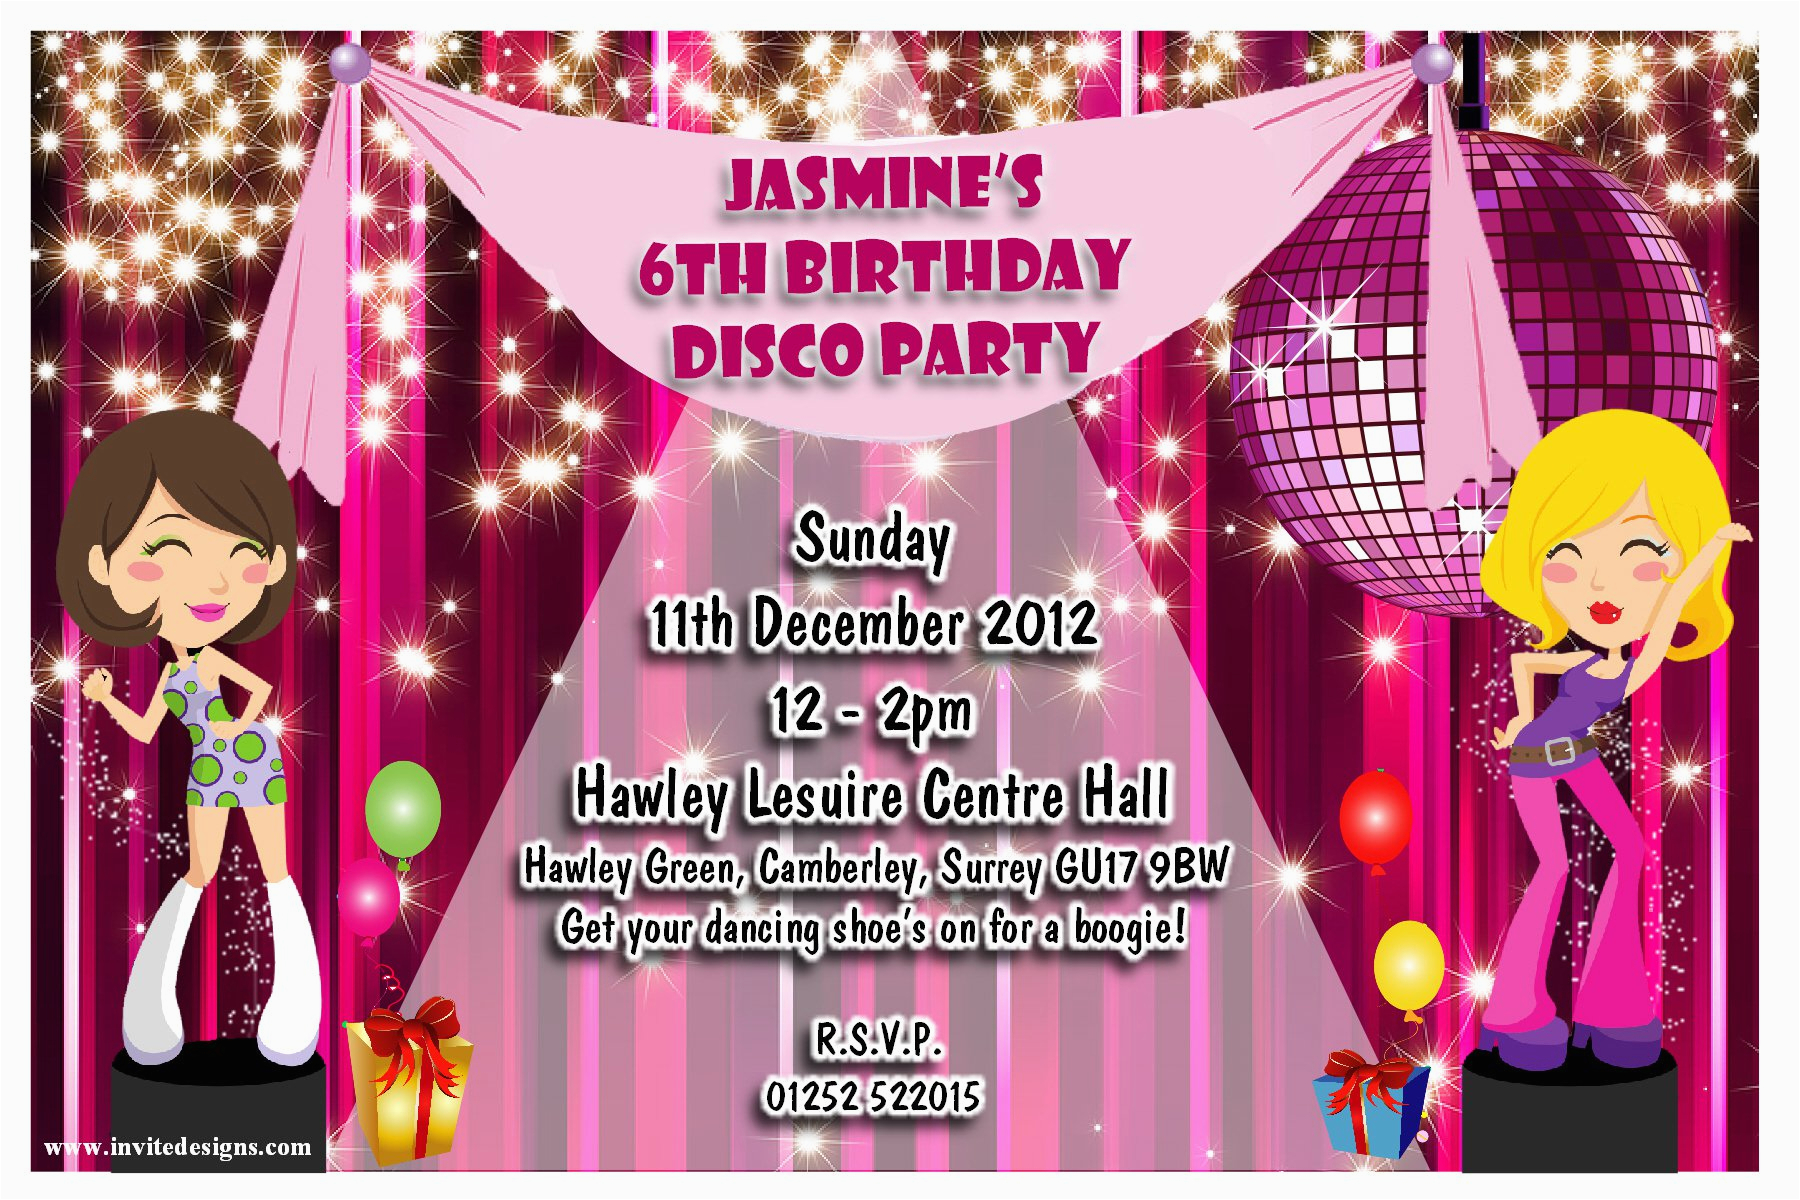 Customized Birthday Invitations Online Free Invitation Card Wording